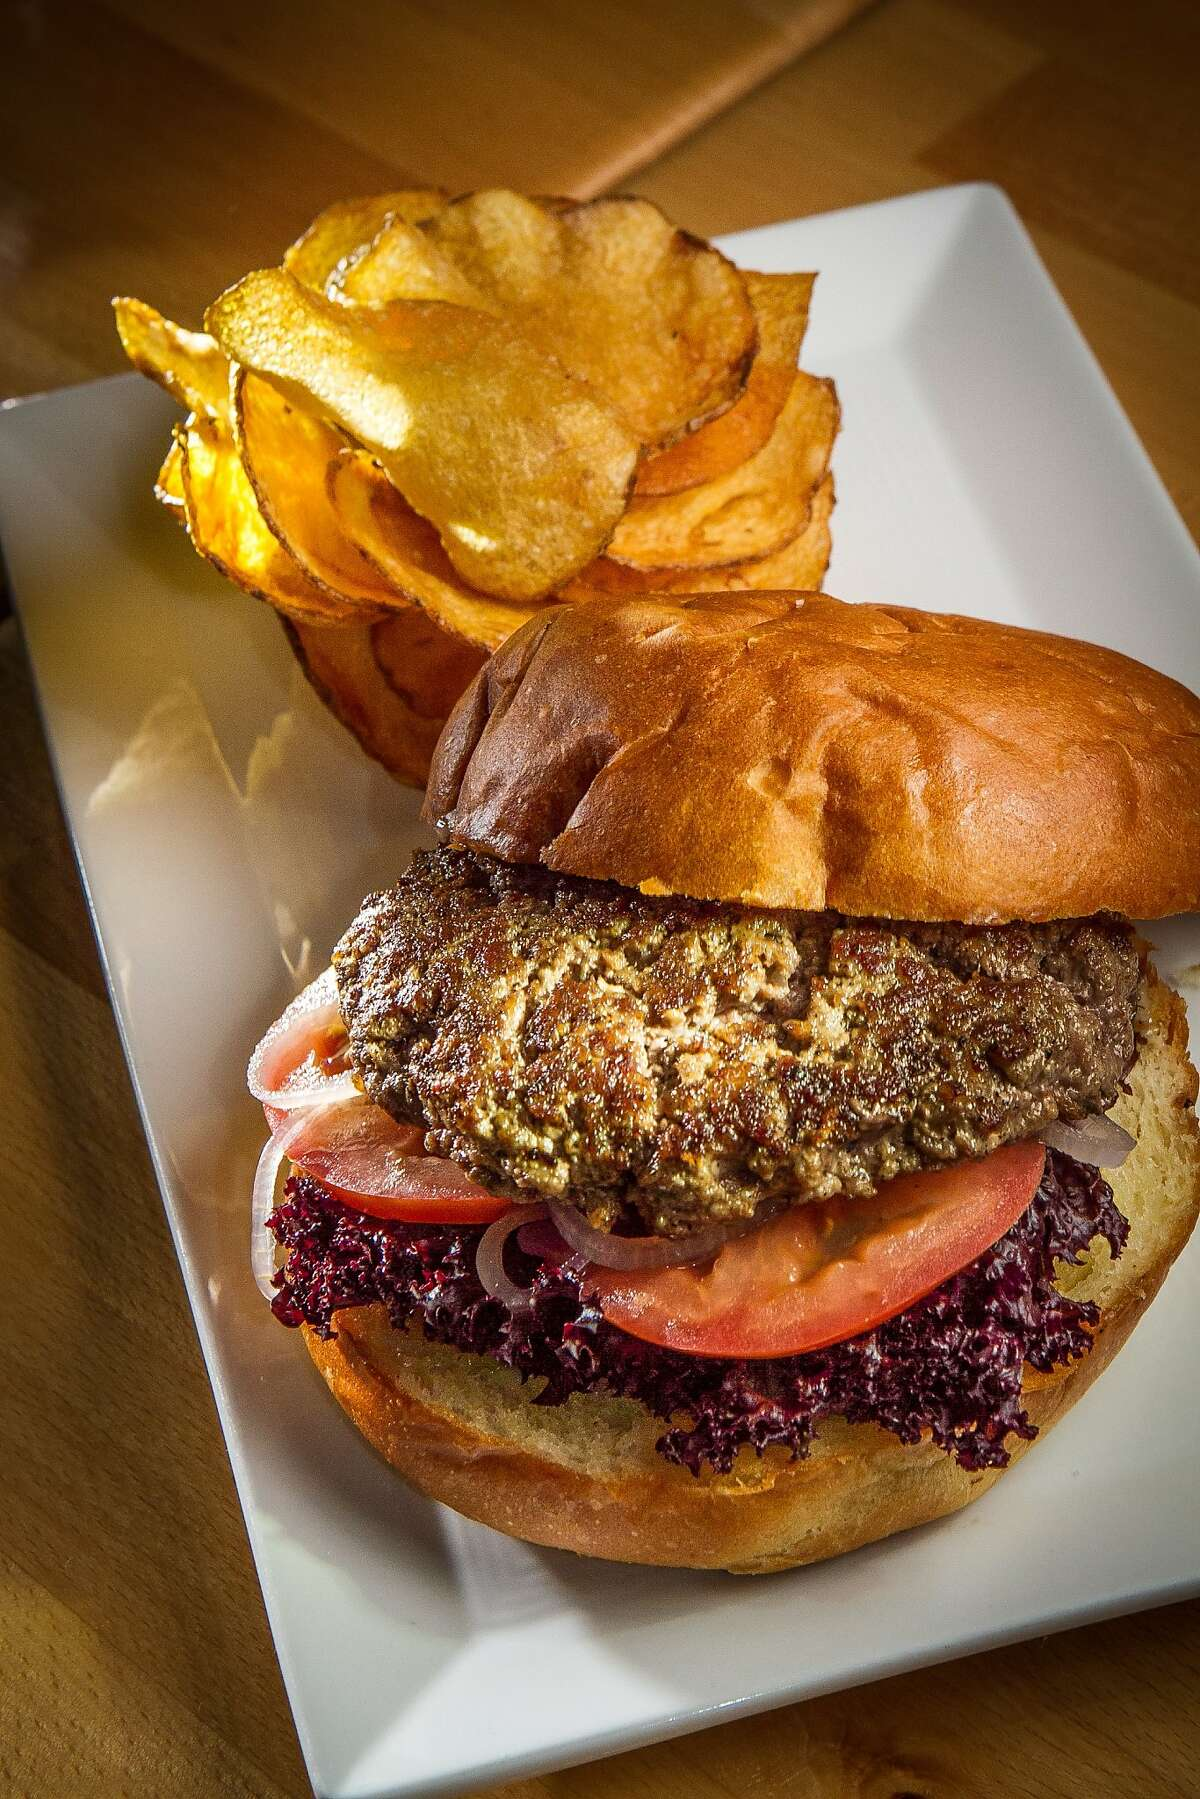 The Uptown Burger at Hopscotch restaurant in Oakland, Calif., is seen on Wednesday, November 21st, 2012.